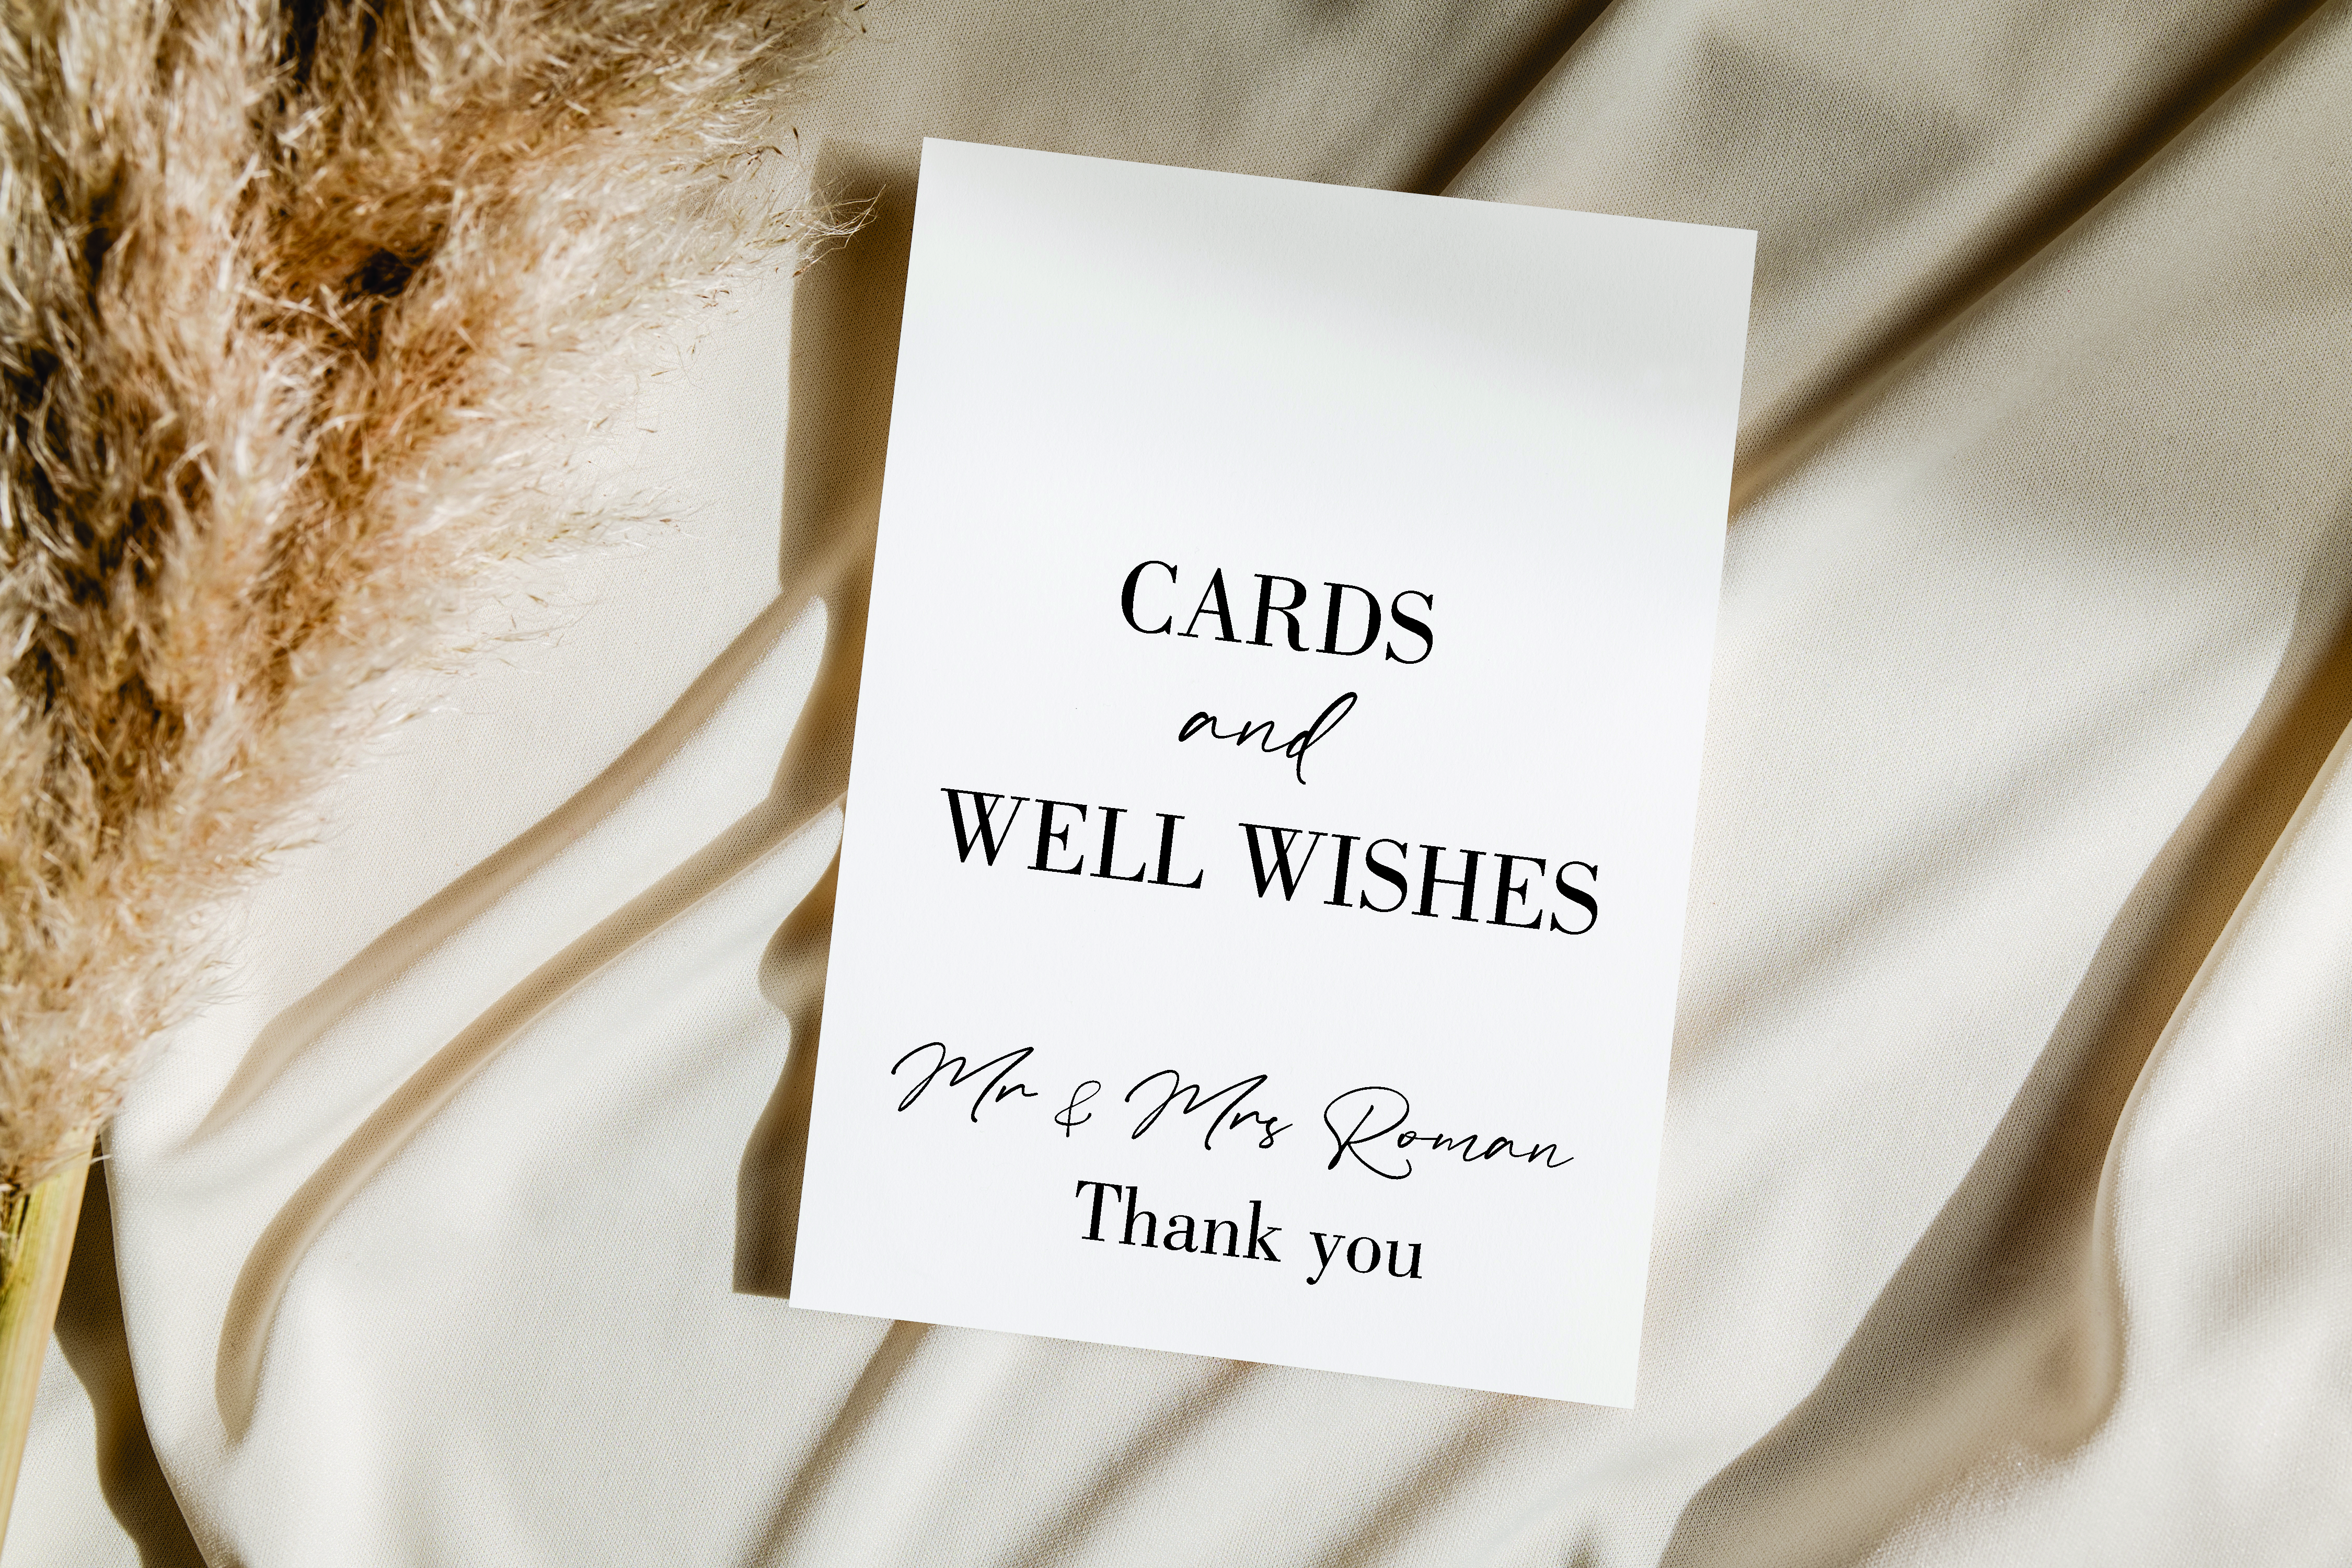 Personalised Thank you for cards & gifts acrylic sign